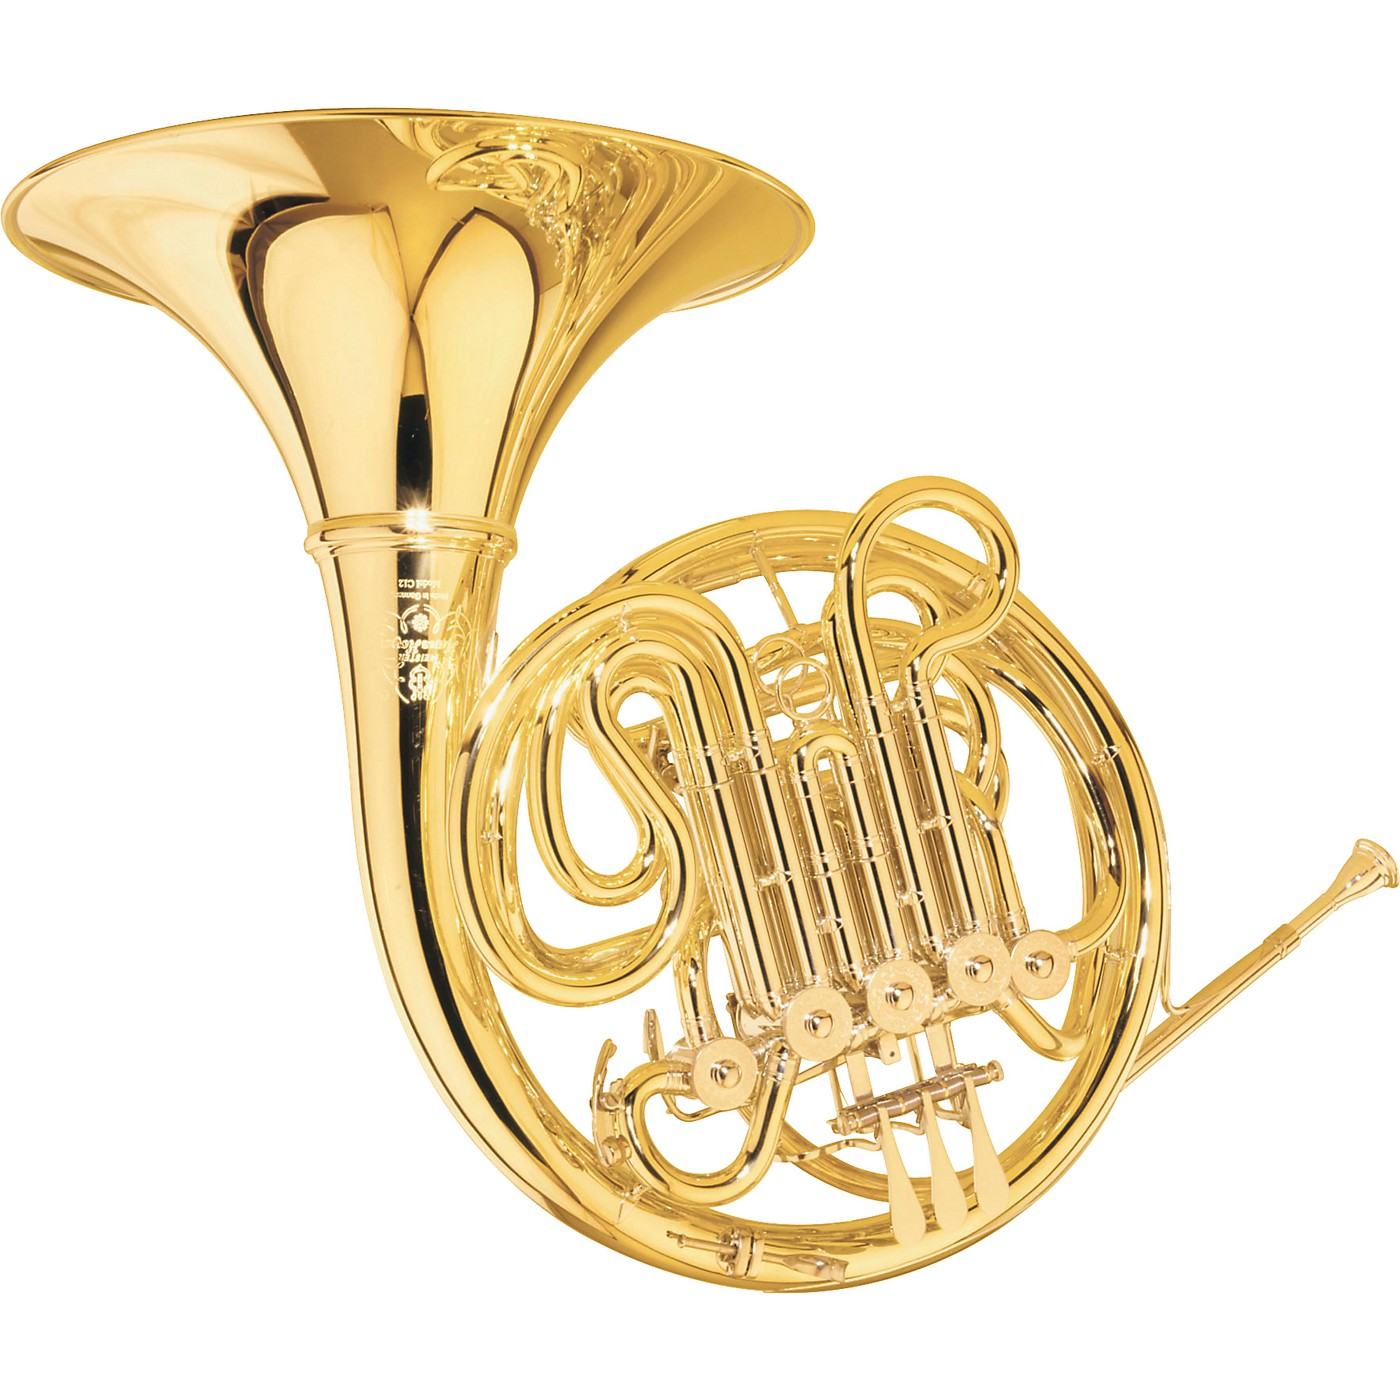 Hans Hoyer C12-L Double Horn thumbnail